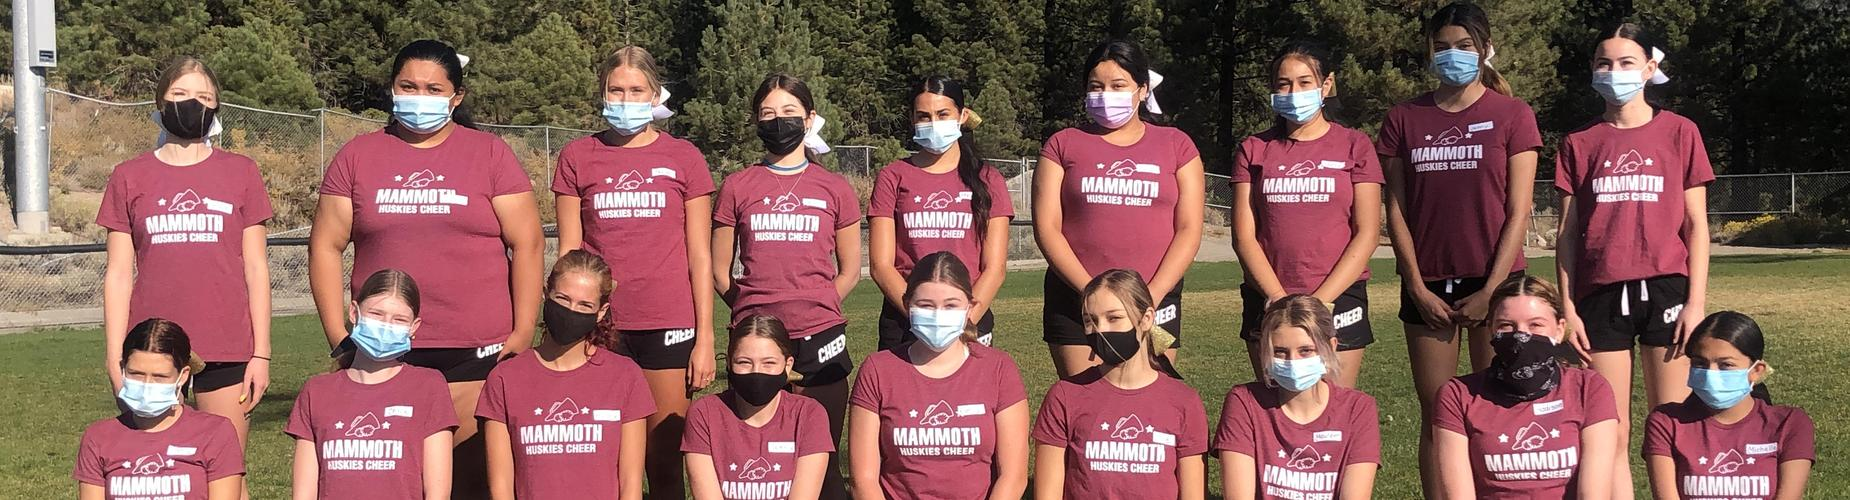 Mammoth High School cheer squad poses with back row standing front row kneeling. All girls wearing masks